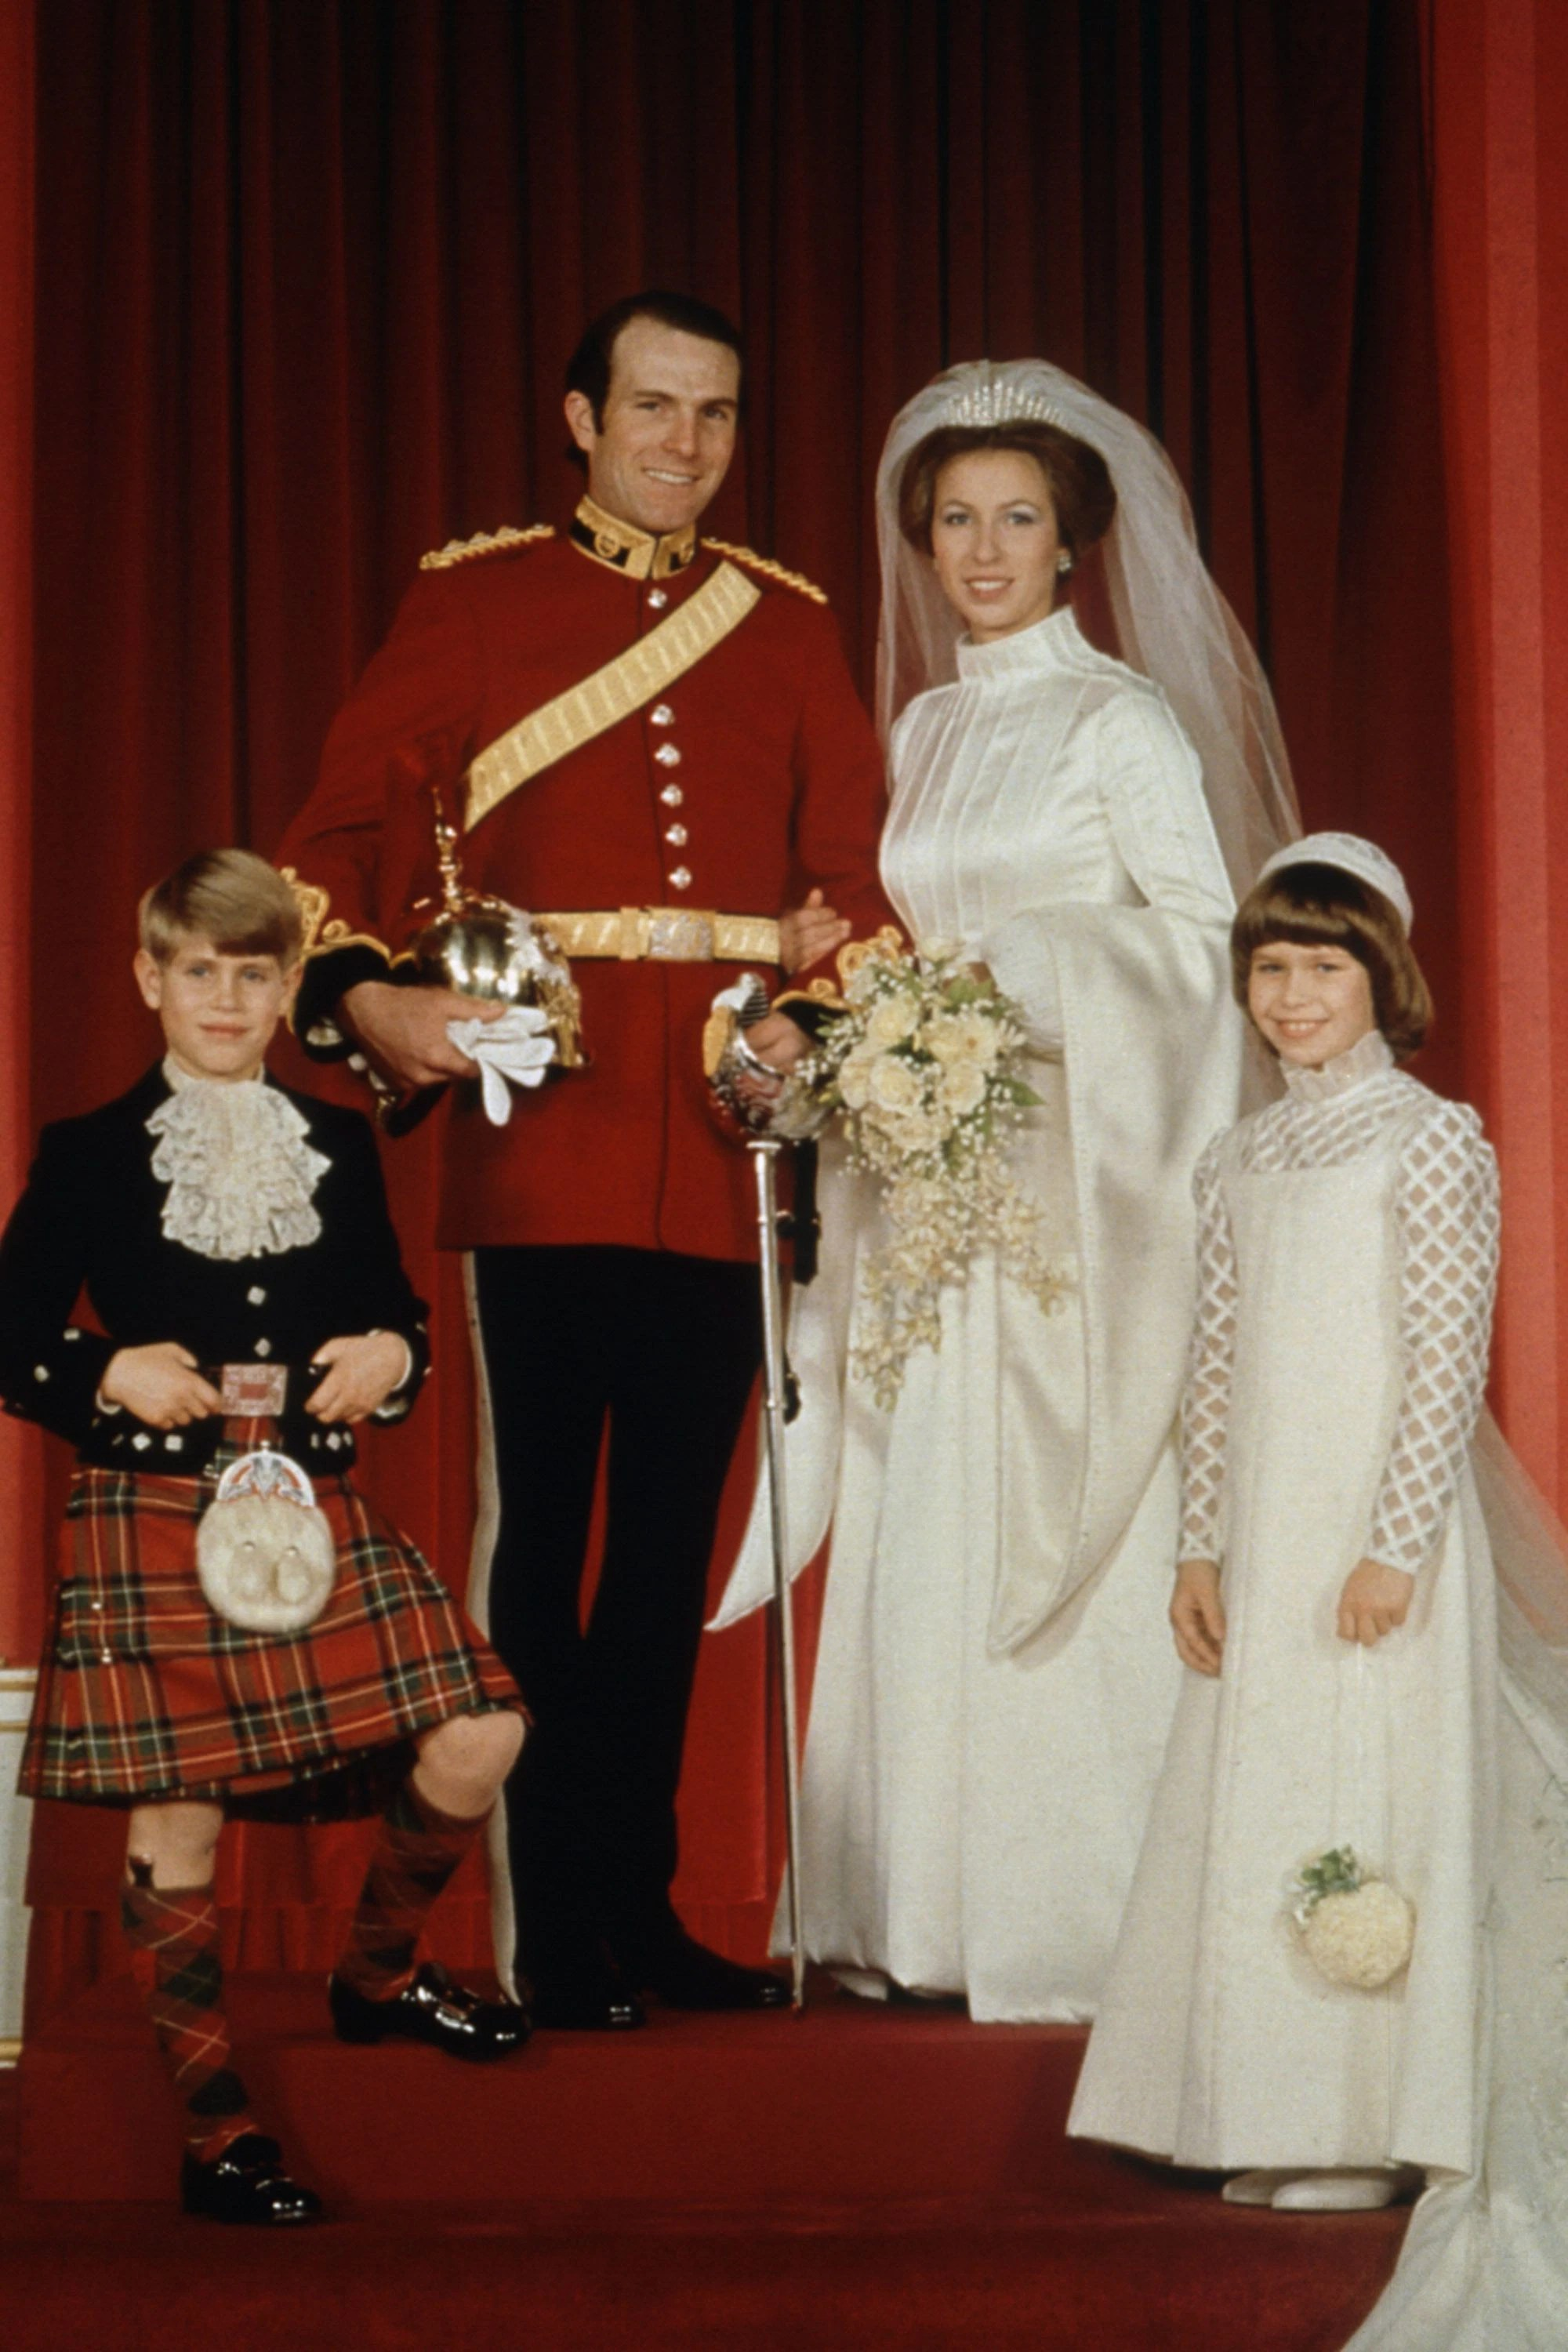 hbz-weddings-princess-anne-gettyimages-613463158-1497640110